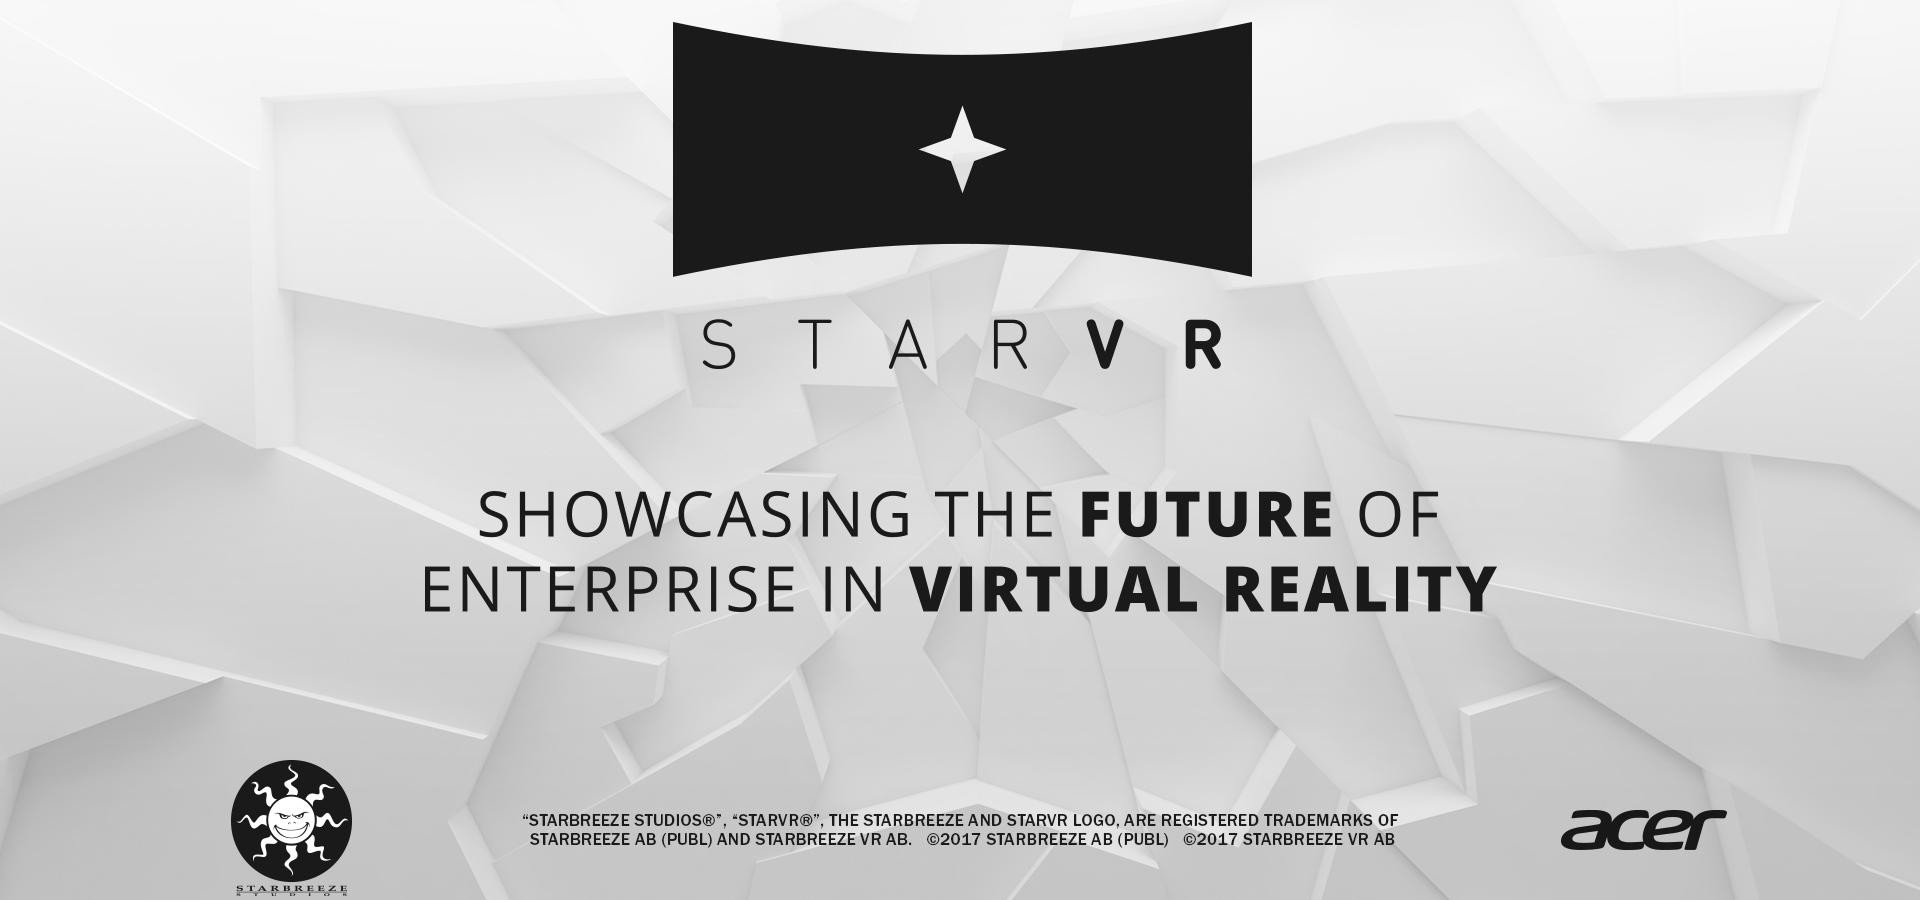 StarVR, Starbreeze and Acer Showcases the Future of Enterprise in Virtual Reality at the SALT Conference in Las Vegas, May 16-19